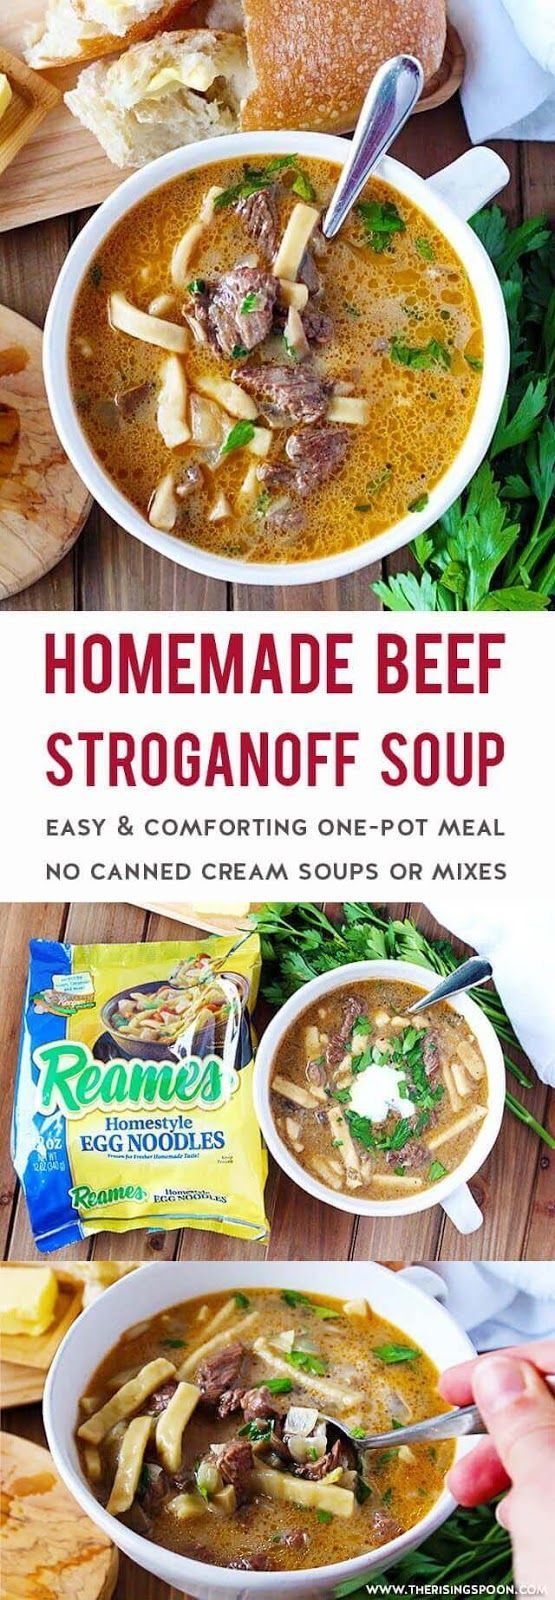 An Easy Beef Stroganoff Soup made in one pot on the stove-top using simple ingredients (no canned cream soups or mixes) in about one hour.  Each spoonful is packed with tender beef, earthy mushrooms, fragrant onion & garlic, thick & hearty noodles, and a rich, slightly creamy & savory broth. This is simple comfort food at its best! Fix a batch any time you're craving a stick-to-your-ribs meal that'll keep you warm. #Reames #Homemadegoodness #ad #soup #souprecipes @WFDRecipe #holidayrecipes